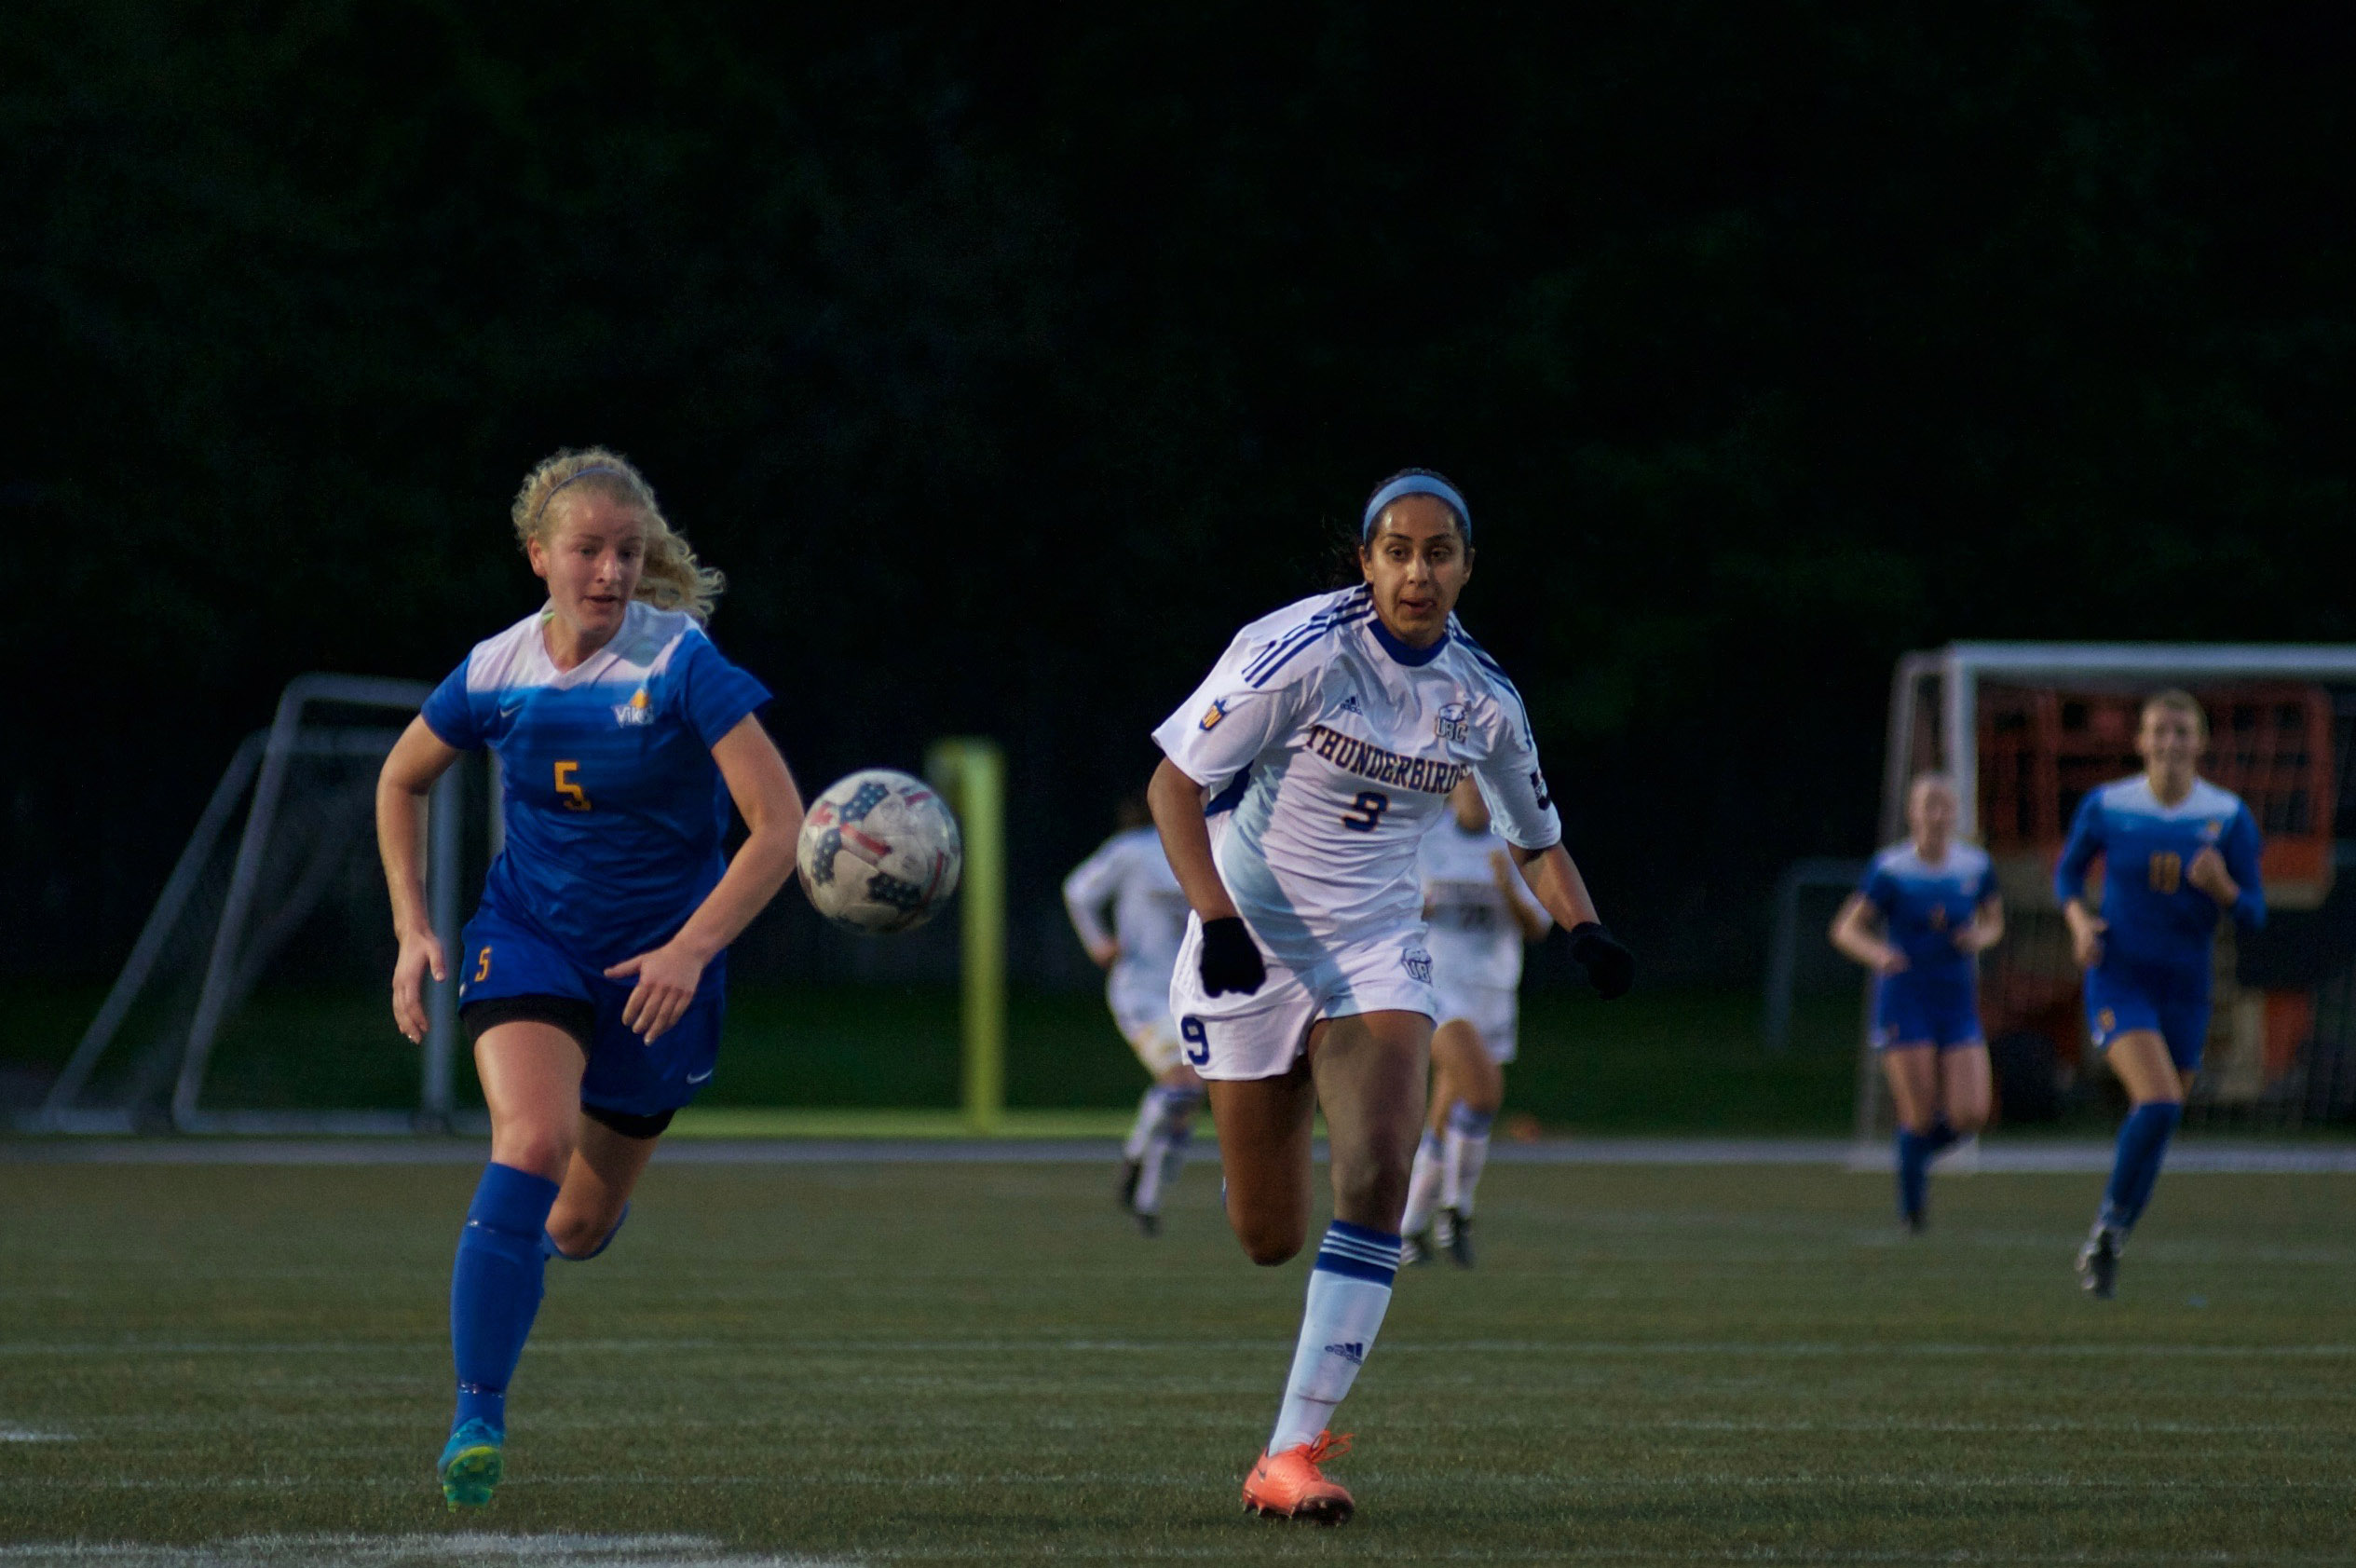 UBC's Jasmin Dhanda strides ahead in a foot race against Vikes defender Katie Carrothers.